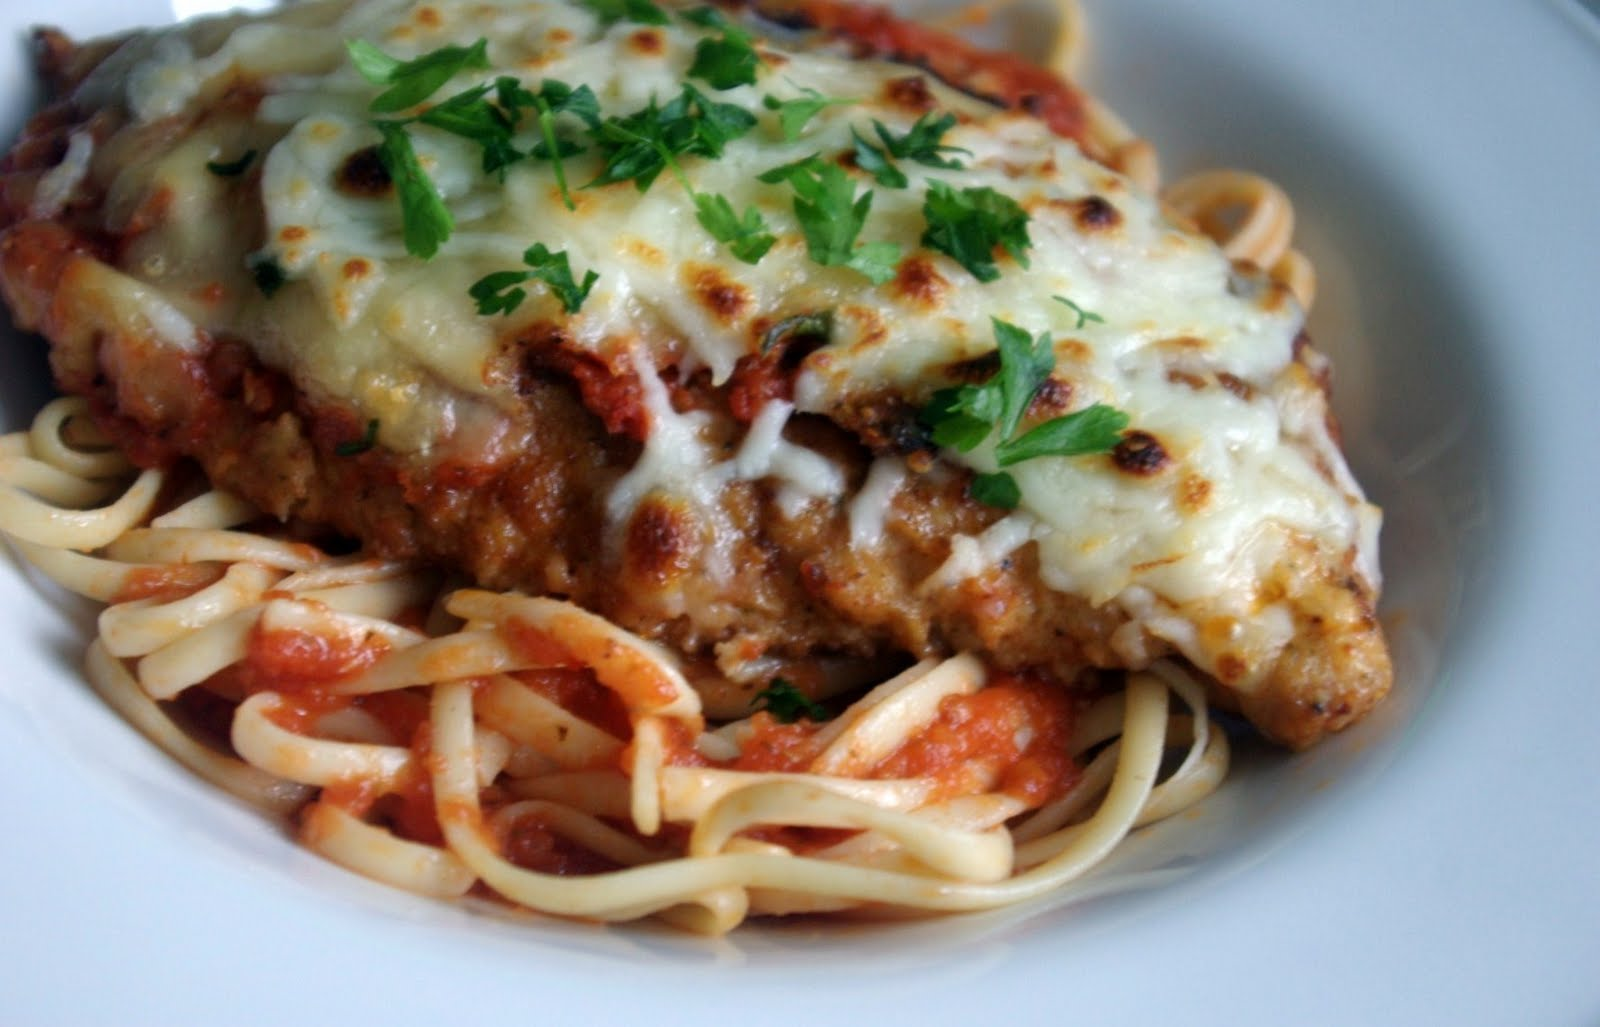 Chicken Parmesan - Sprinkles of Parsley